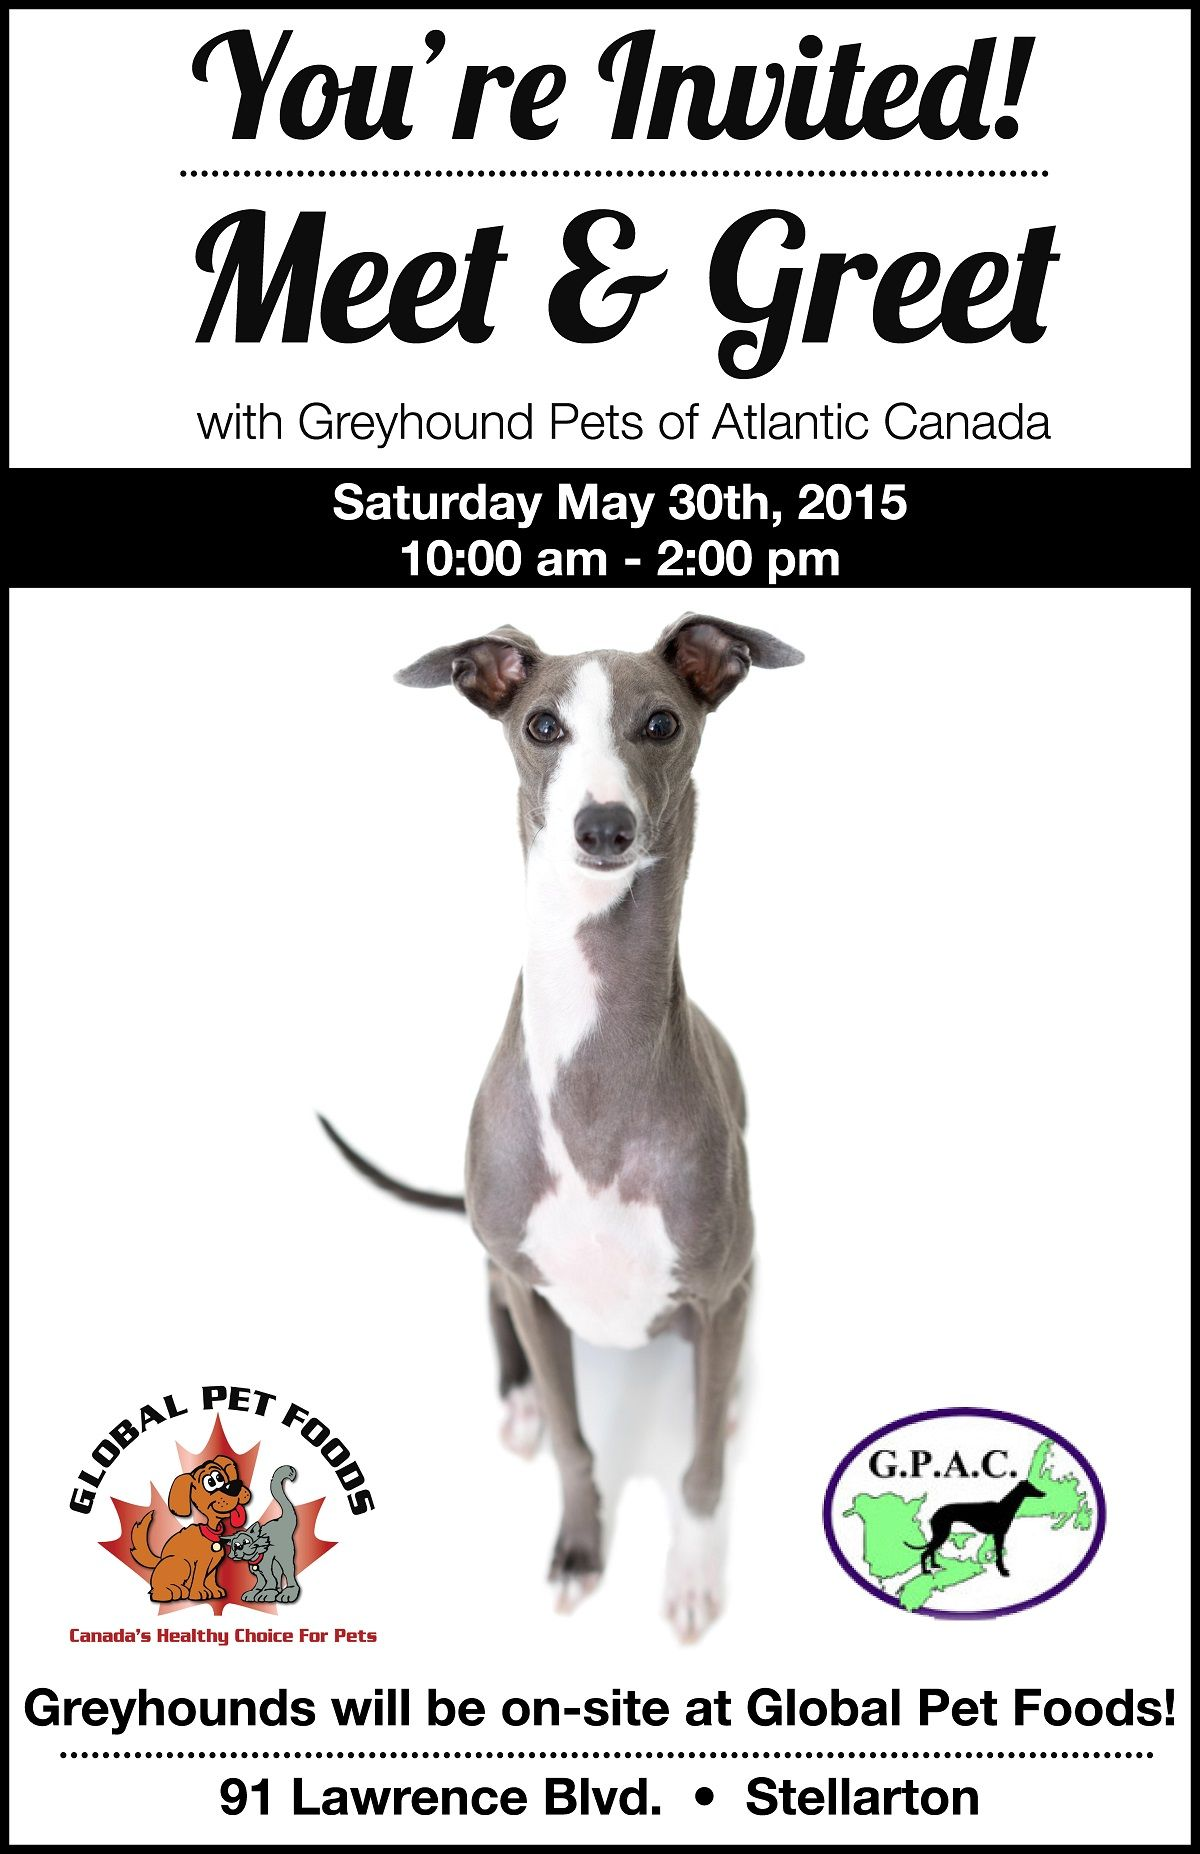 Meet Greet With Greyhound Pets Of Atlantic Canada At The Global Pet Foods Store In Stellarton Nova Scotia On Saturday May Food Animals Pet Food Store Pets